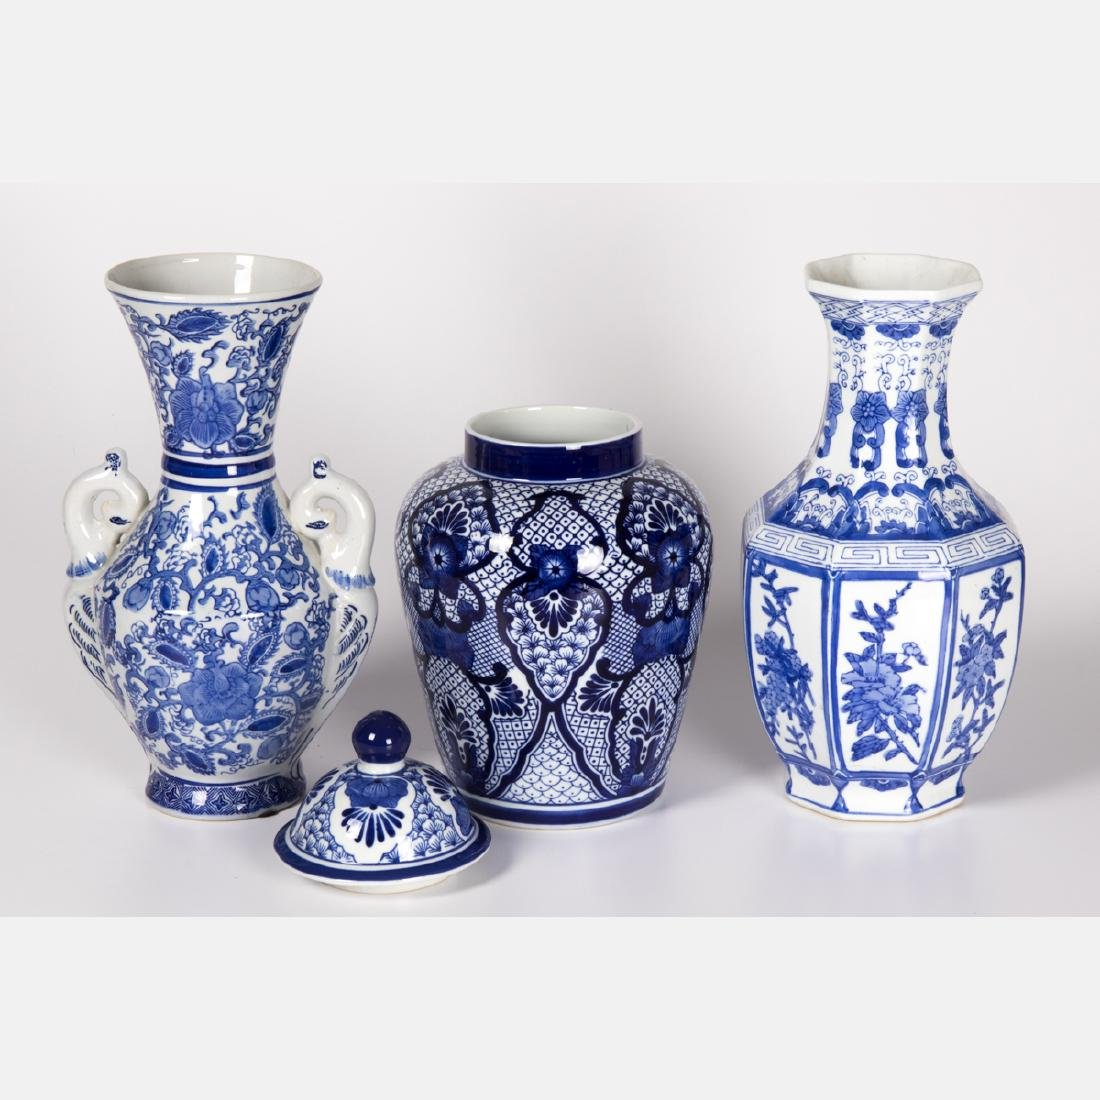 A Group of Three Chinese Blue and White Porcelain - 2